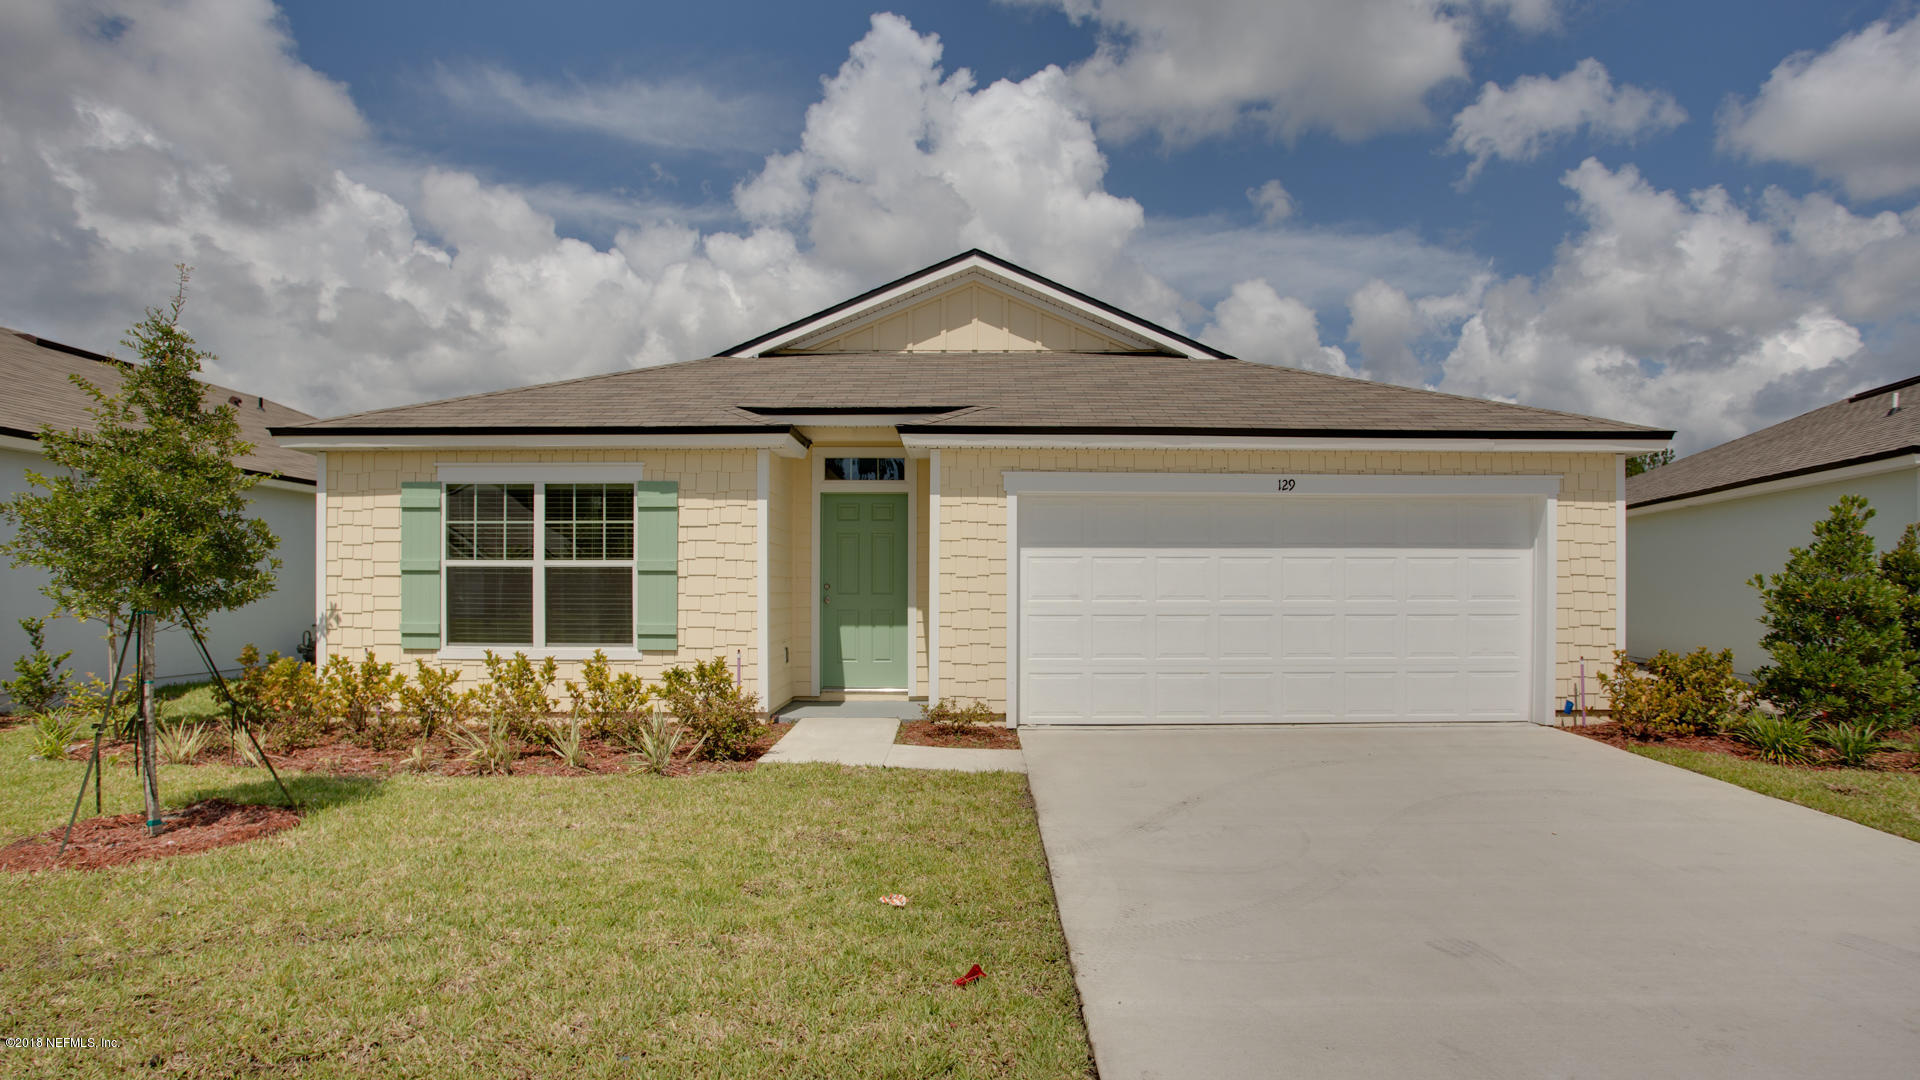 129 FAIRWAY, BUNNELL, FLORIDA 32110, 4 Bedrooms Bedrooms, ,2 BathroomsBathrooms,Residential - single family,For sale,FAIRWAY,898050